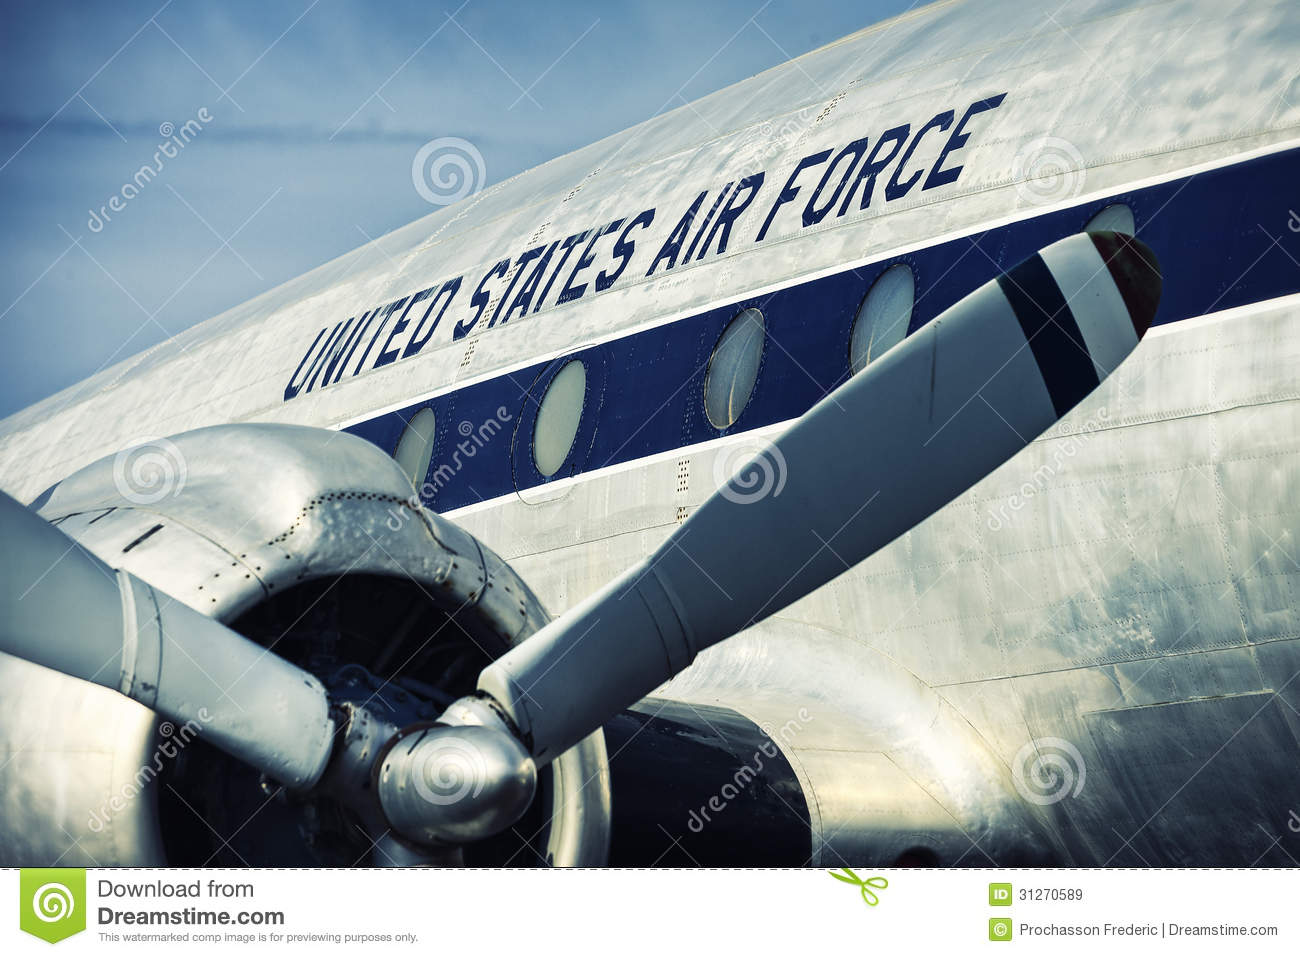 United States Air Force Royalty Free Stock Images   Image  31270589